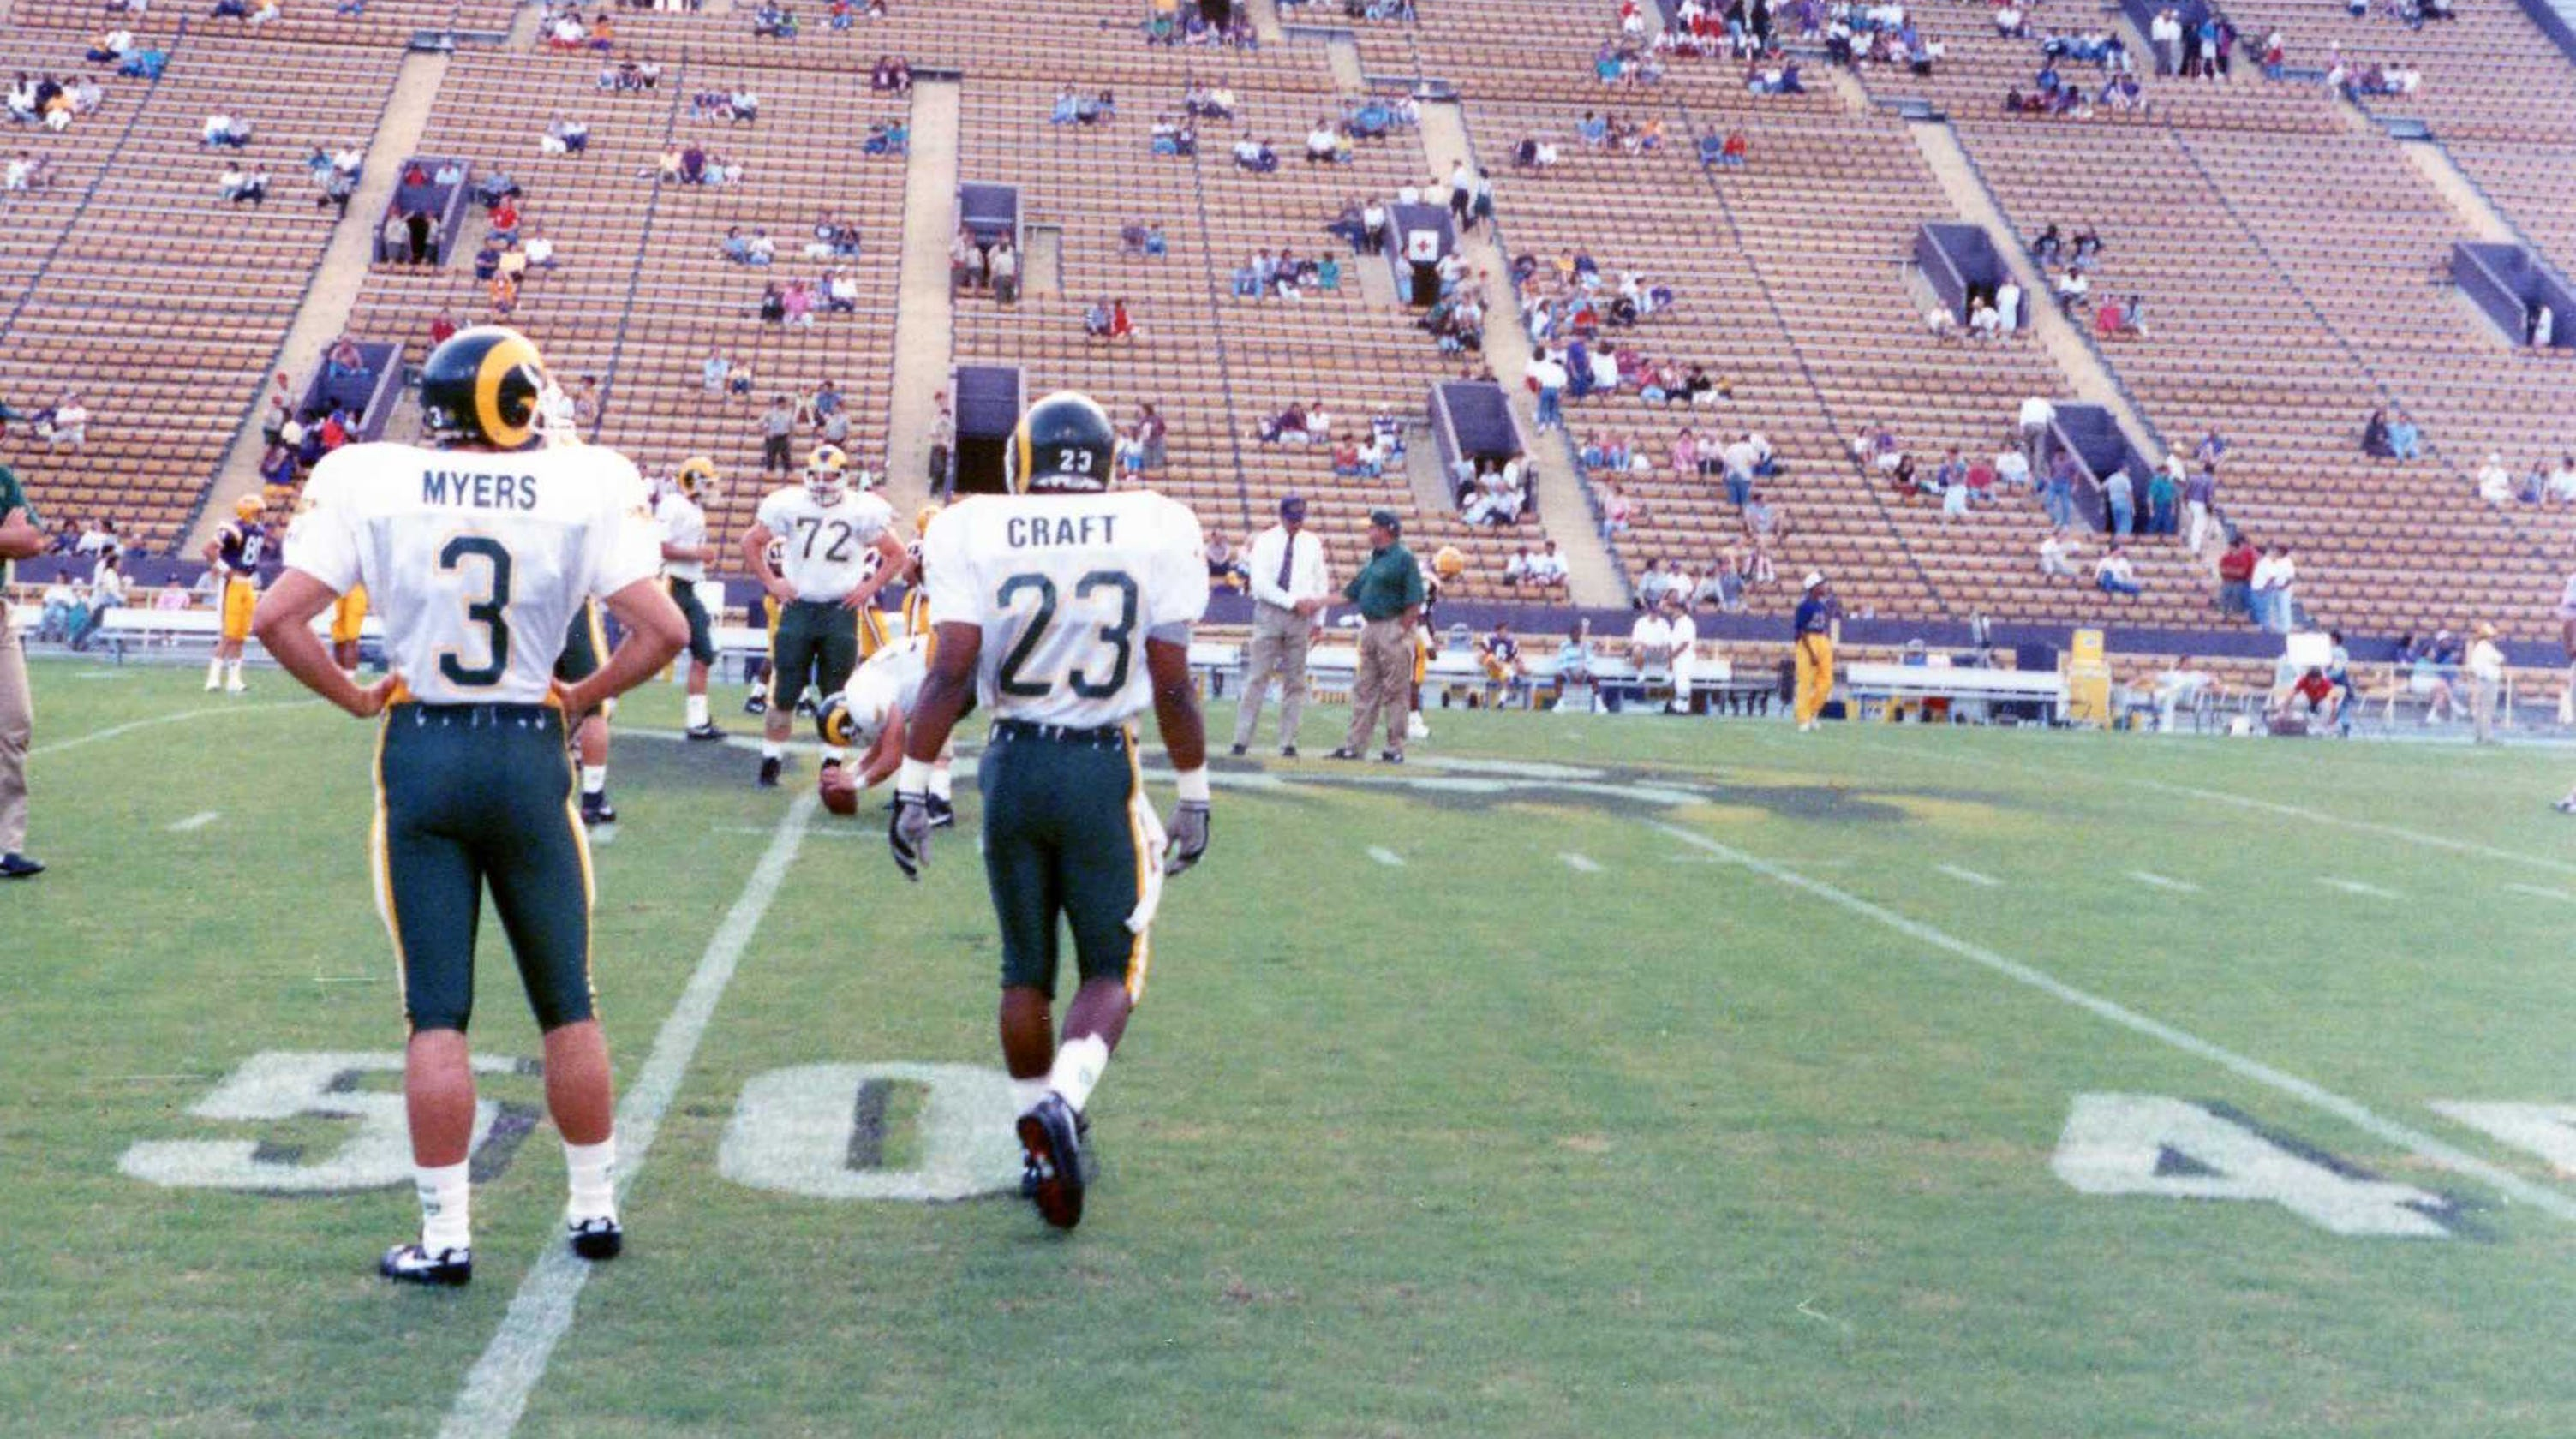 CSU Was 0 3 Going Into Only Game It Has Ever Won Over An SEC Football Team